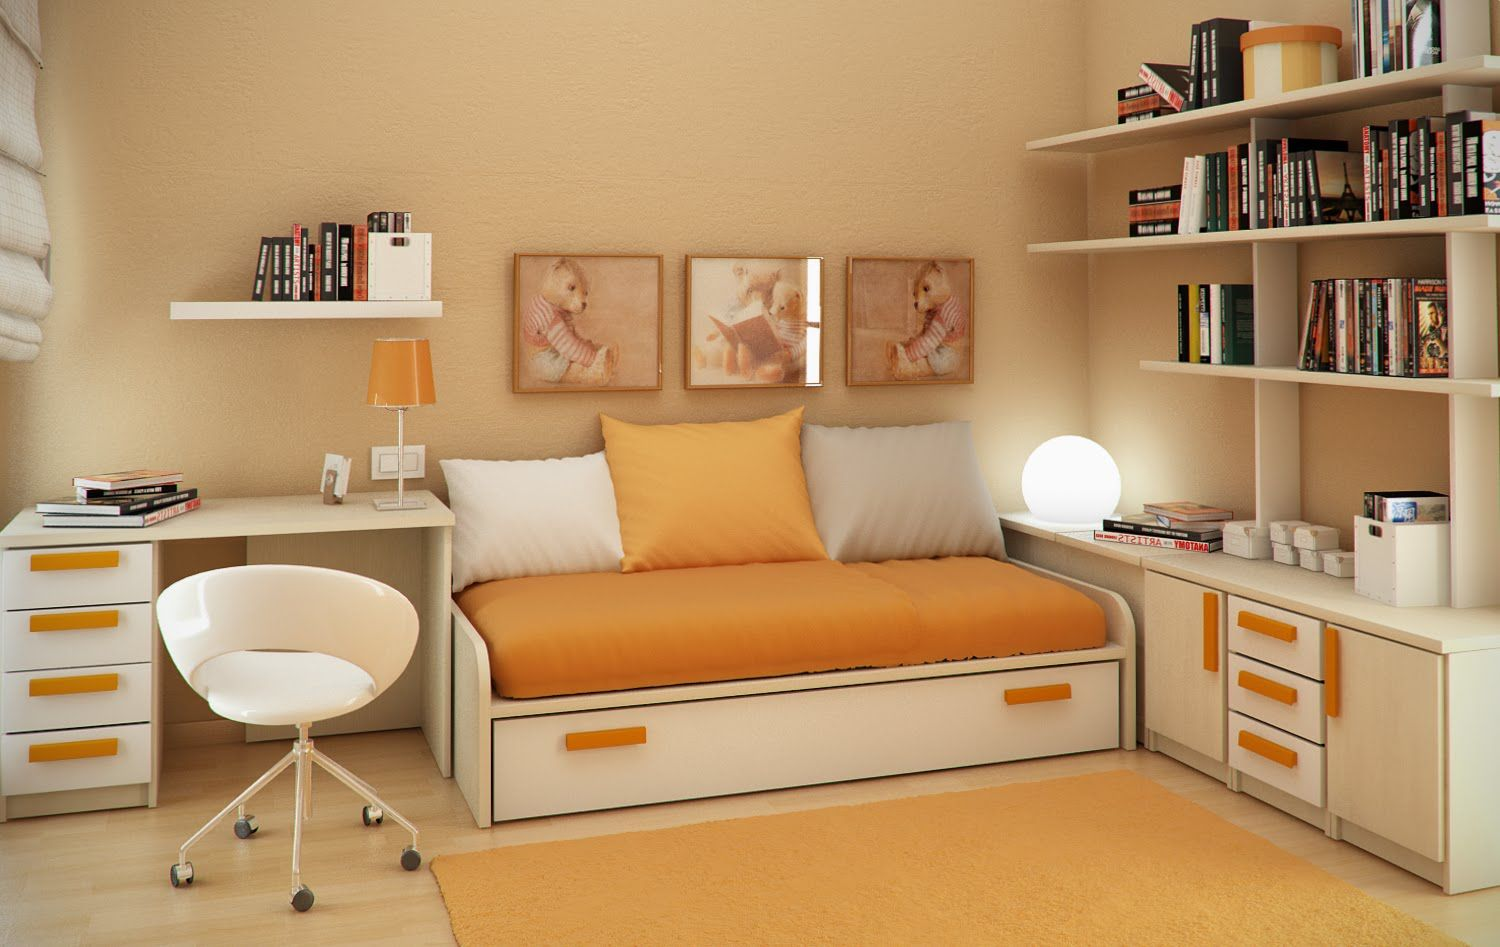 25 Cool Bed Ideas For Small Rooms Small Bedroom Designs